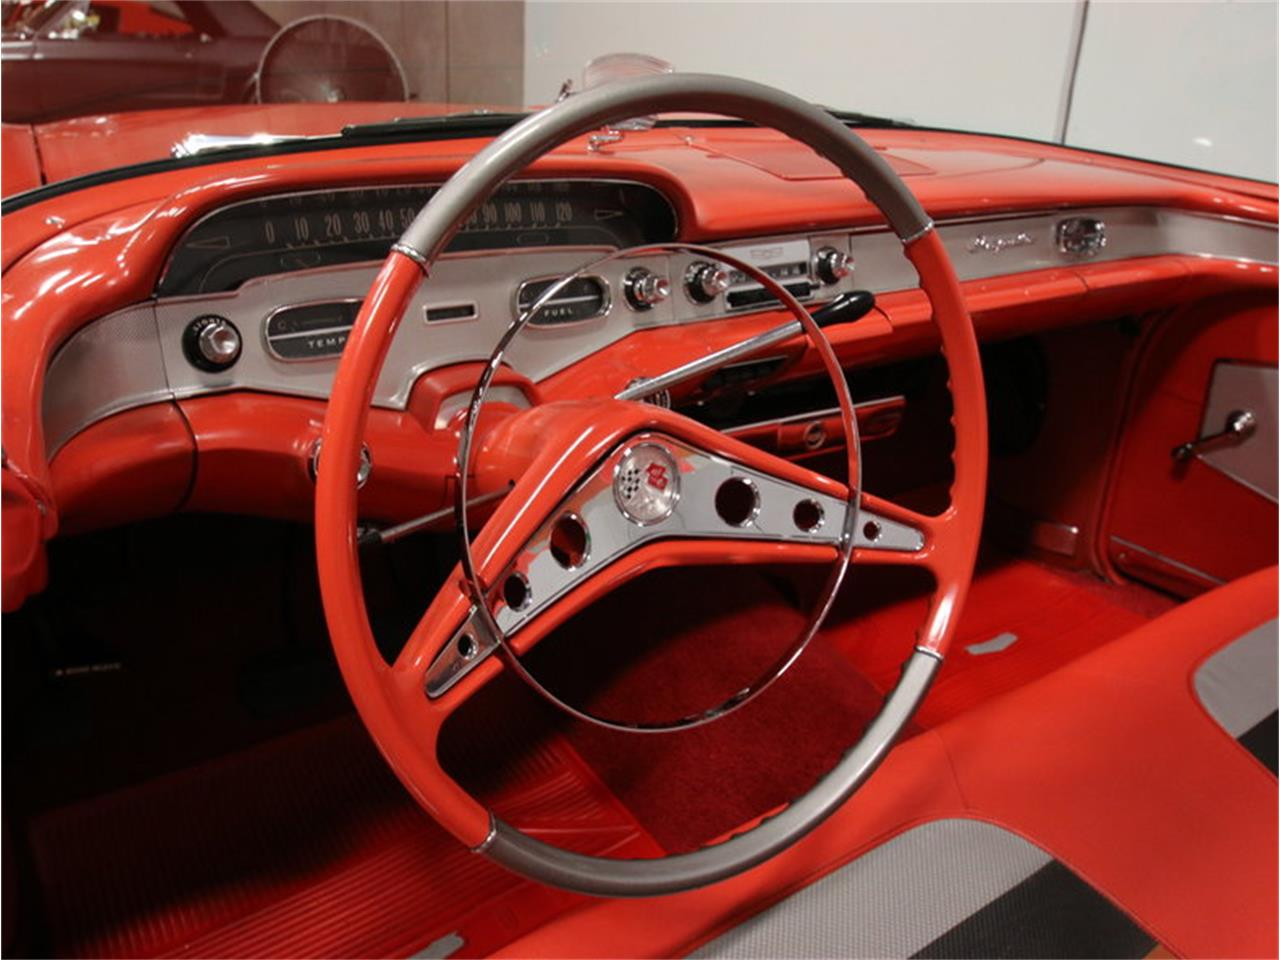 Large Picture of 1958 Chevrolet Impala located in Georgia - $106,995.00 Offered by Streetside Classics - Atlanta - EVGO